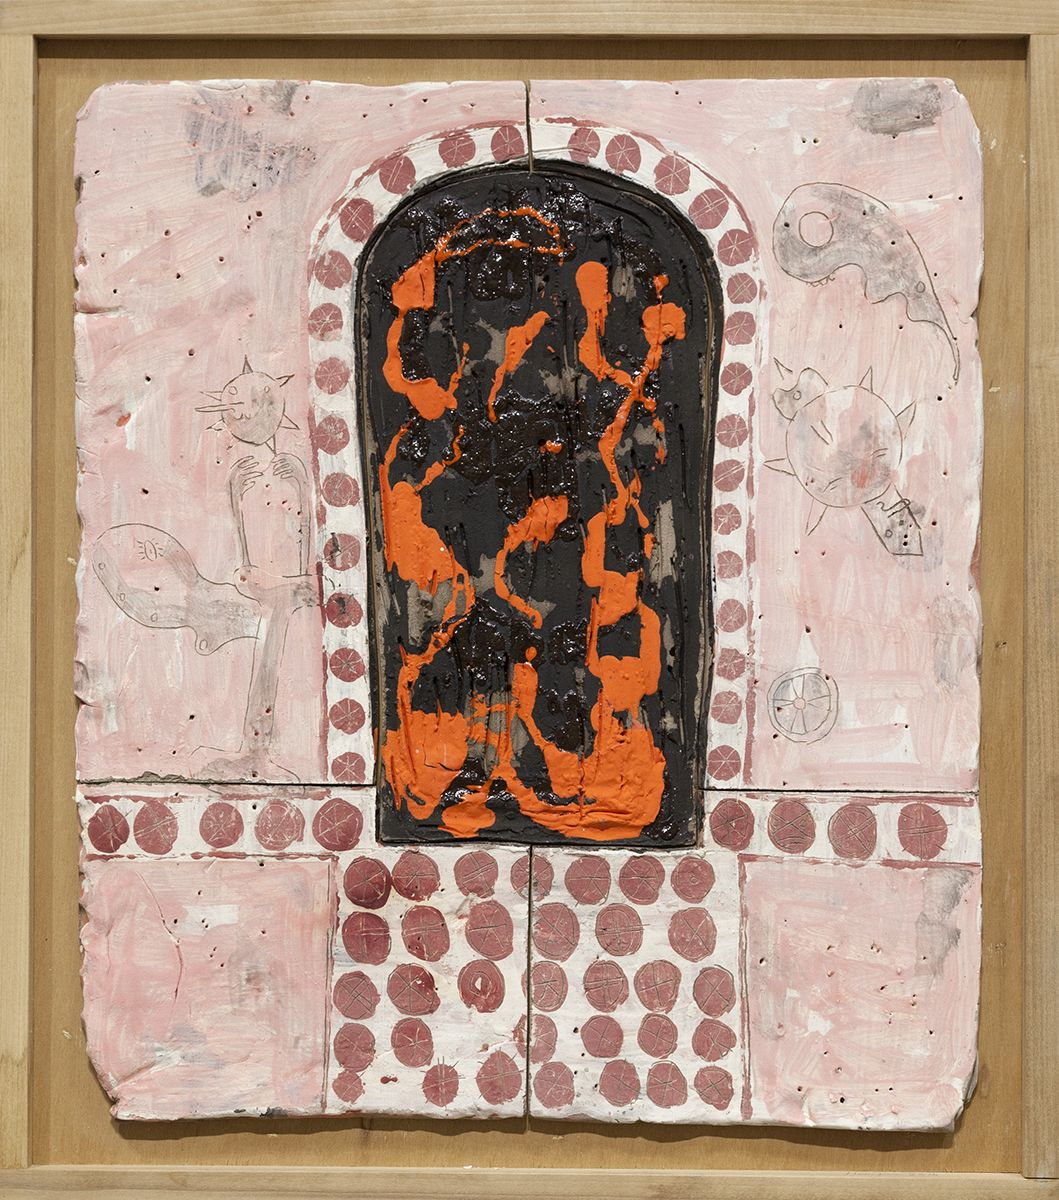 Richard Hawkins  Norogachian Consecration of Shit and Peyote, 2016  Glazed ceramic in artist's frame   25 3/4 x 22 3/4 x 1 5/8 inches (65.4 x 57.8 x 4.1 cm)